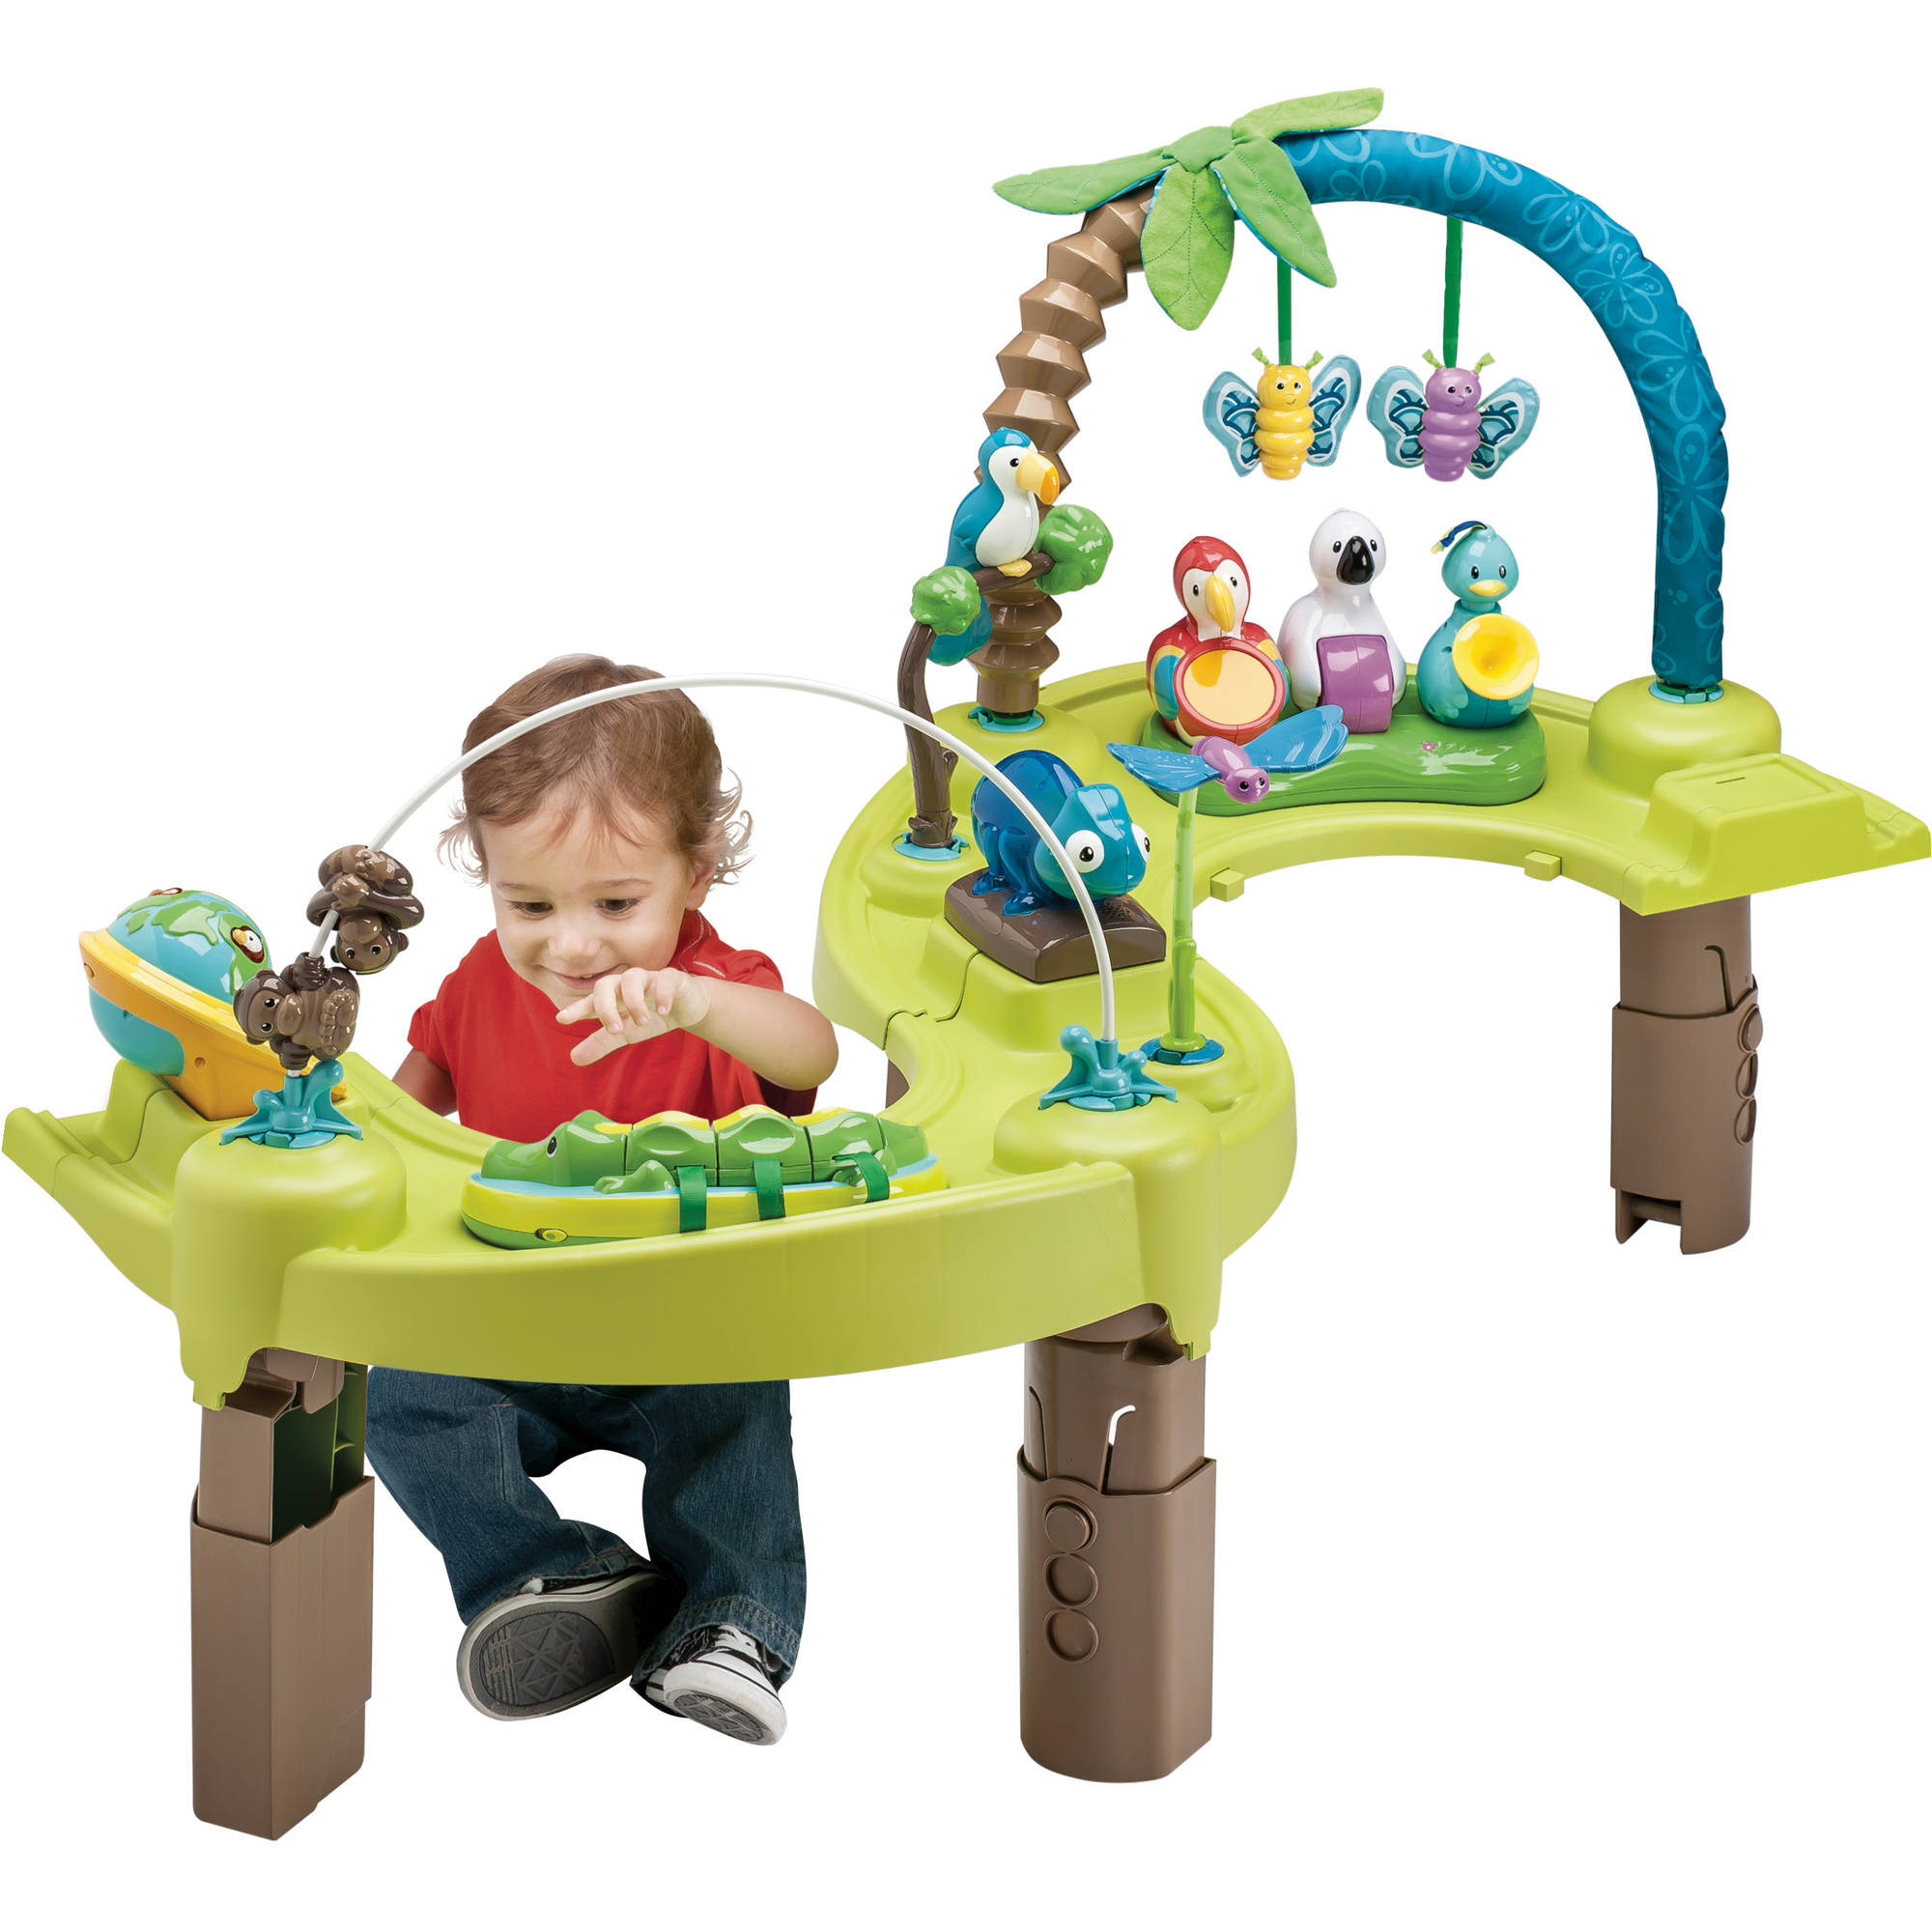 Evenflo ExerSaucer Triple Fun, Amazon